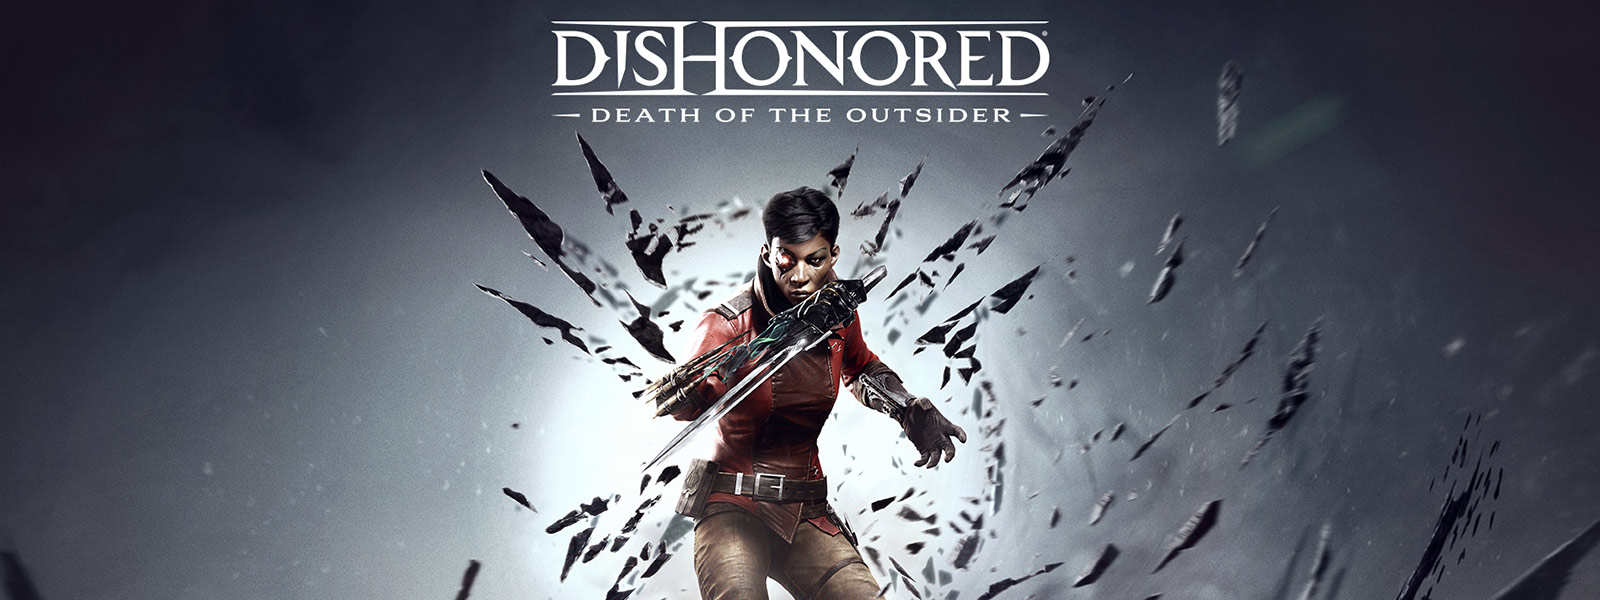 Neu bei Dishonored 2